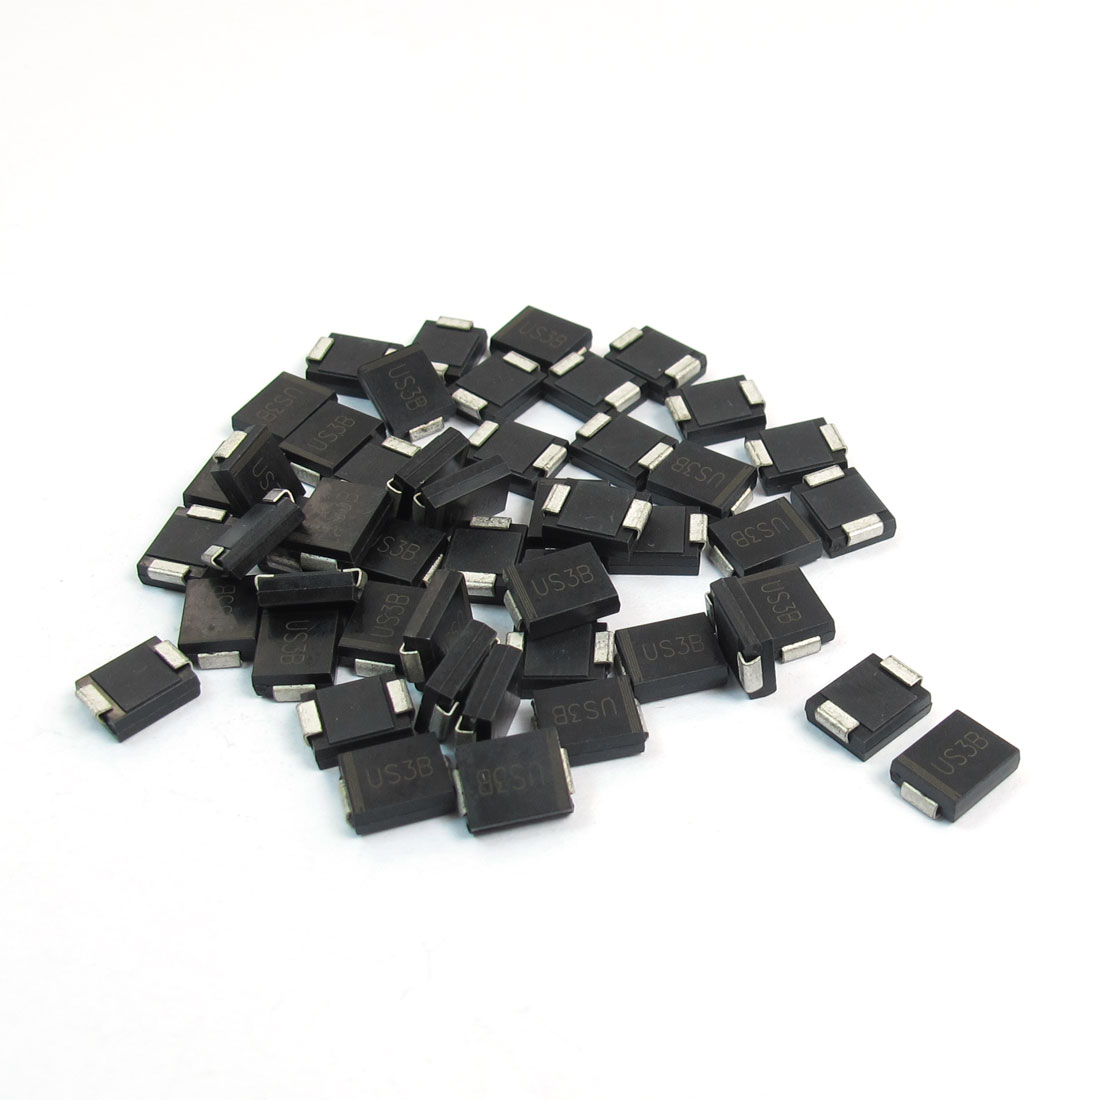 DO-214AB Package 100V 3A SMT SMD High Efficiency Rectifier Diode US3B-C 50pcs